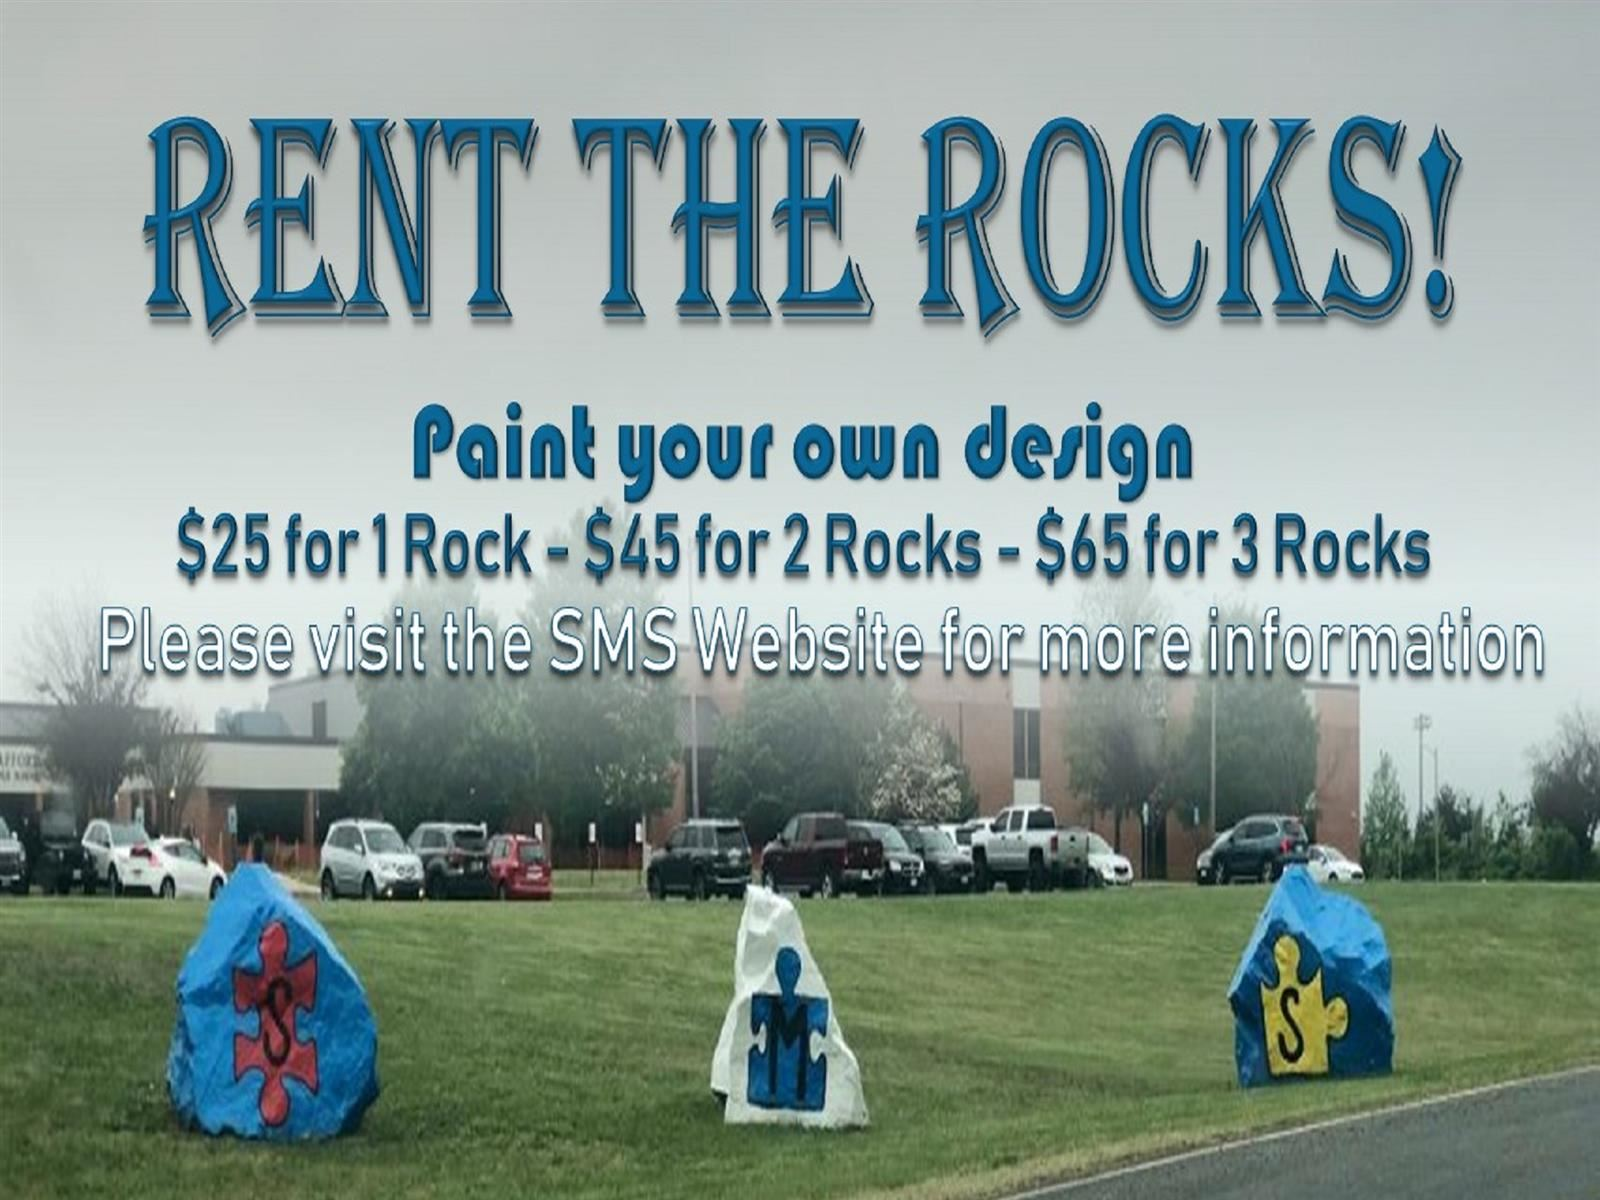 Rent the Rocks!